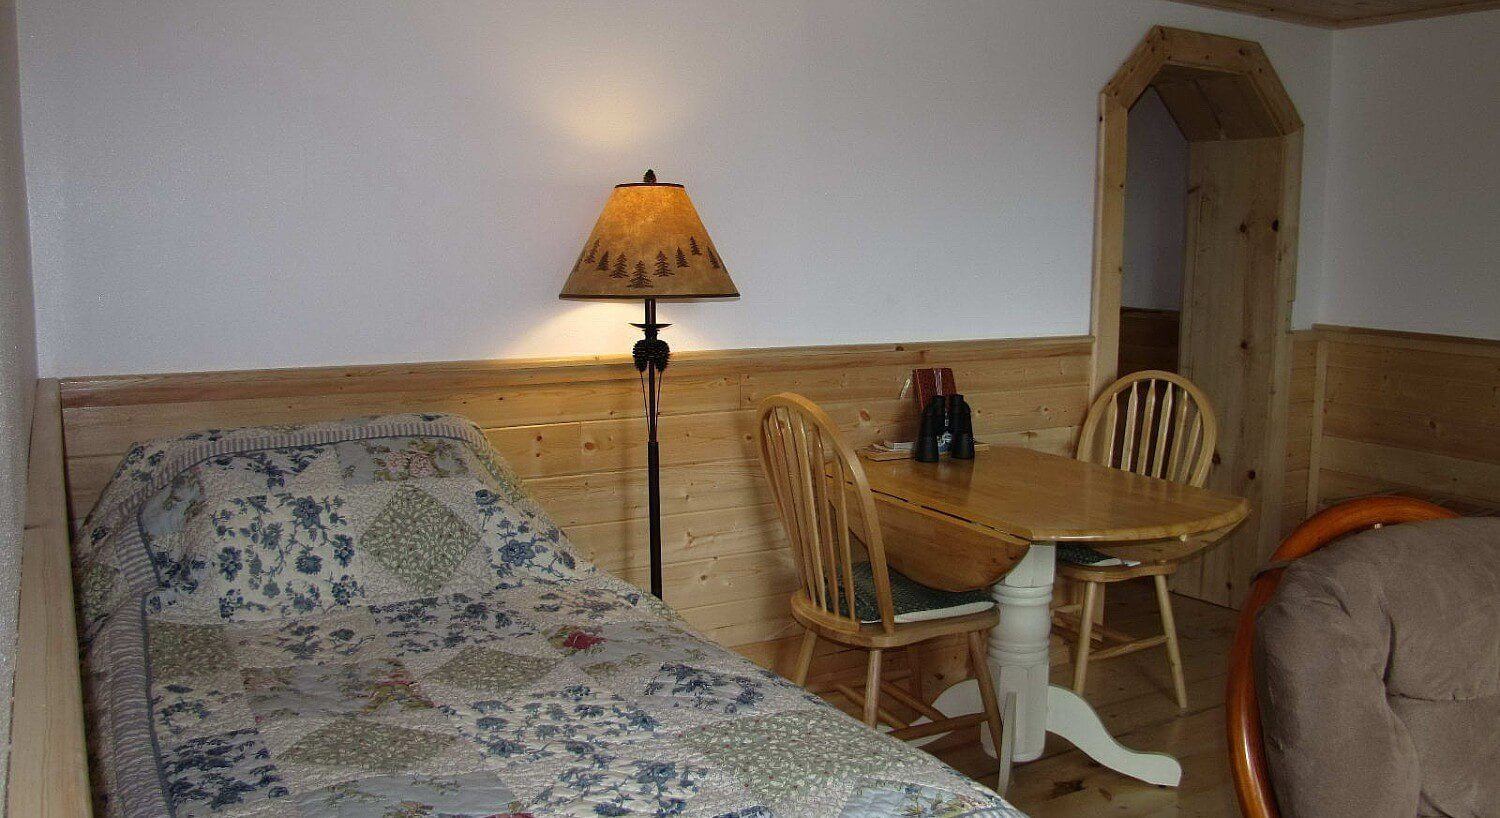 Cozy cabin guest room with twin bed, tall lamp, drop-leaf table with two chairs and plush glider rocker